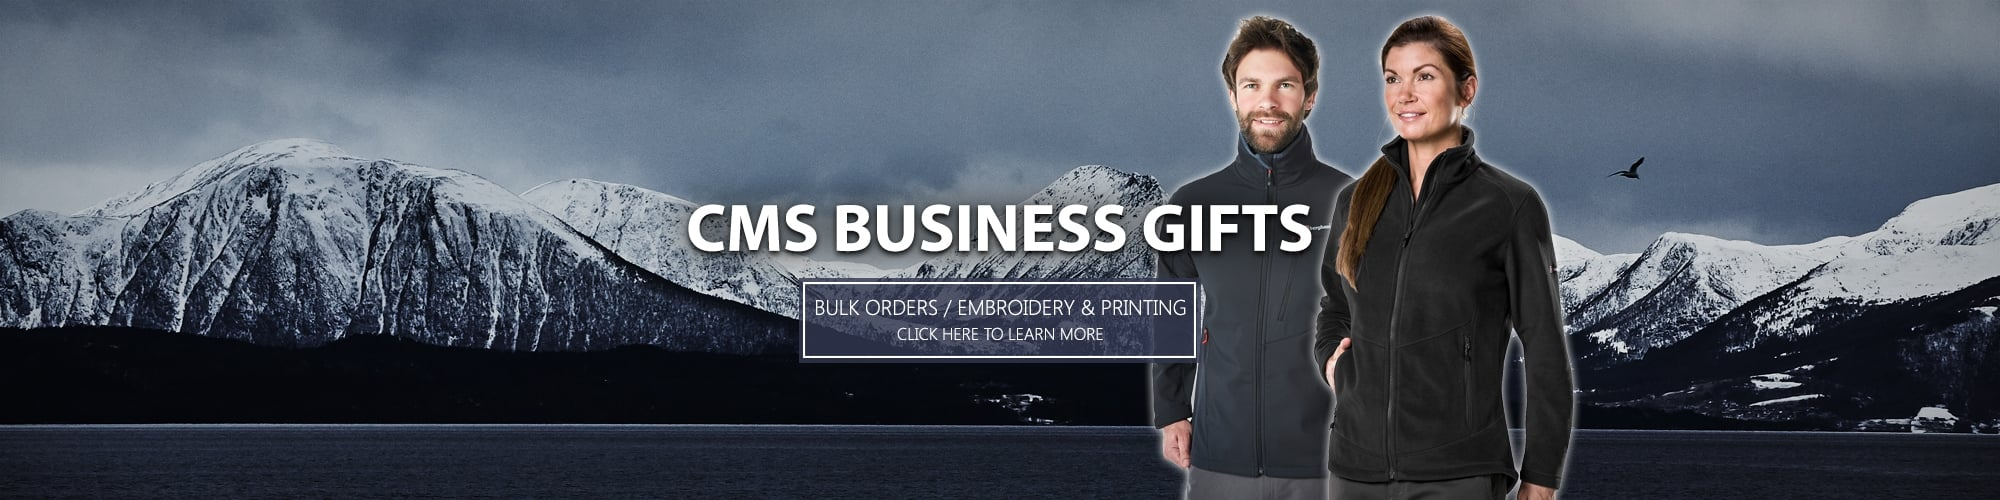 CMS Business Gifts